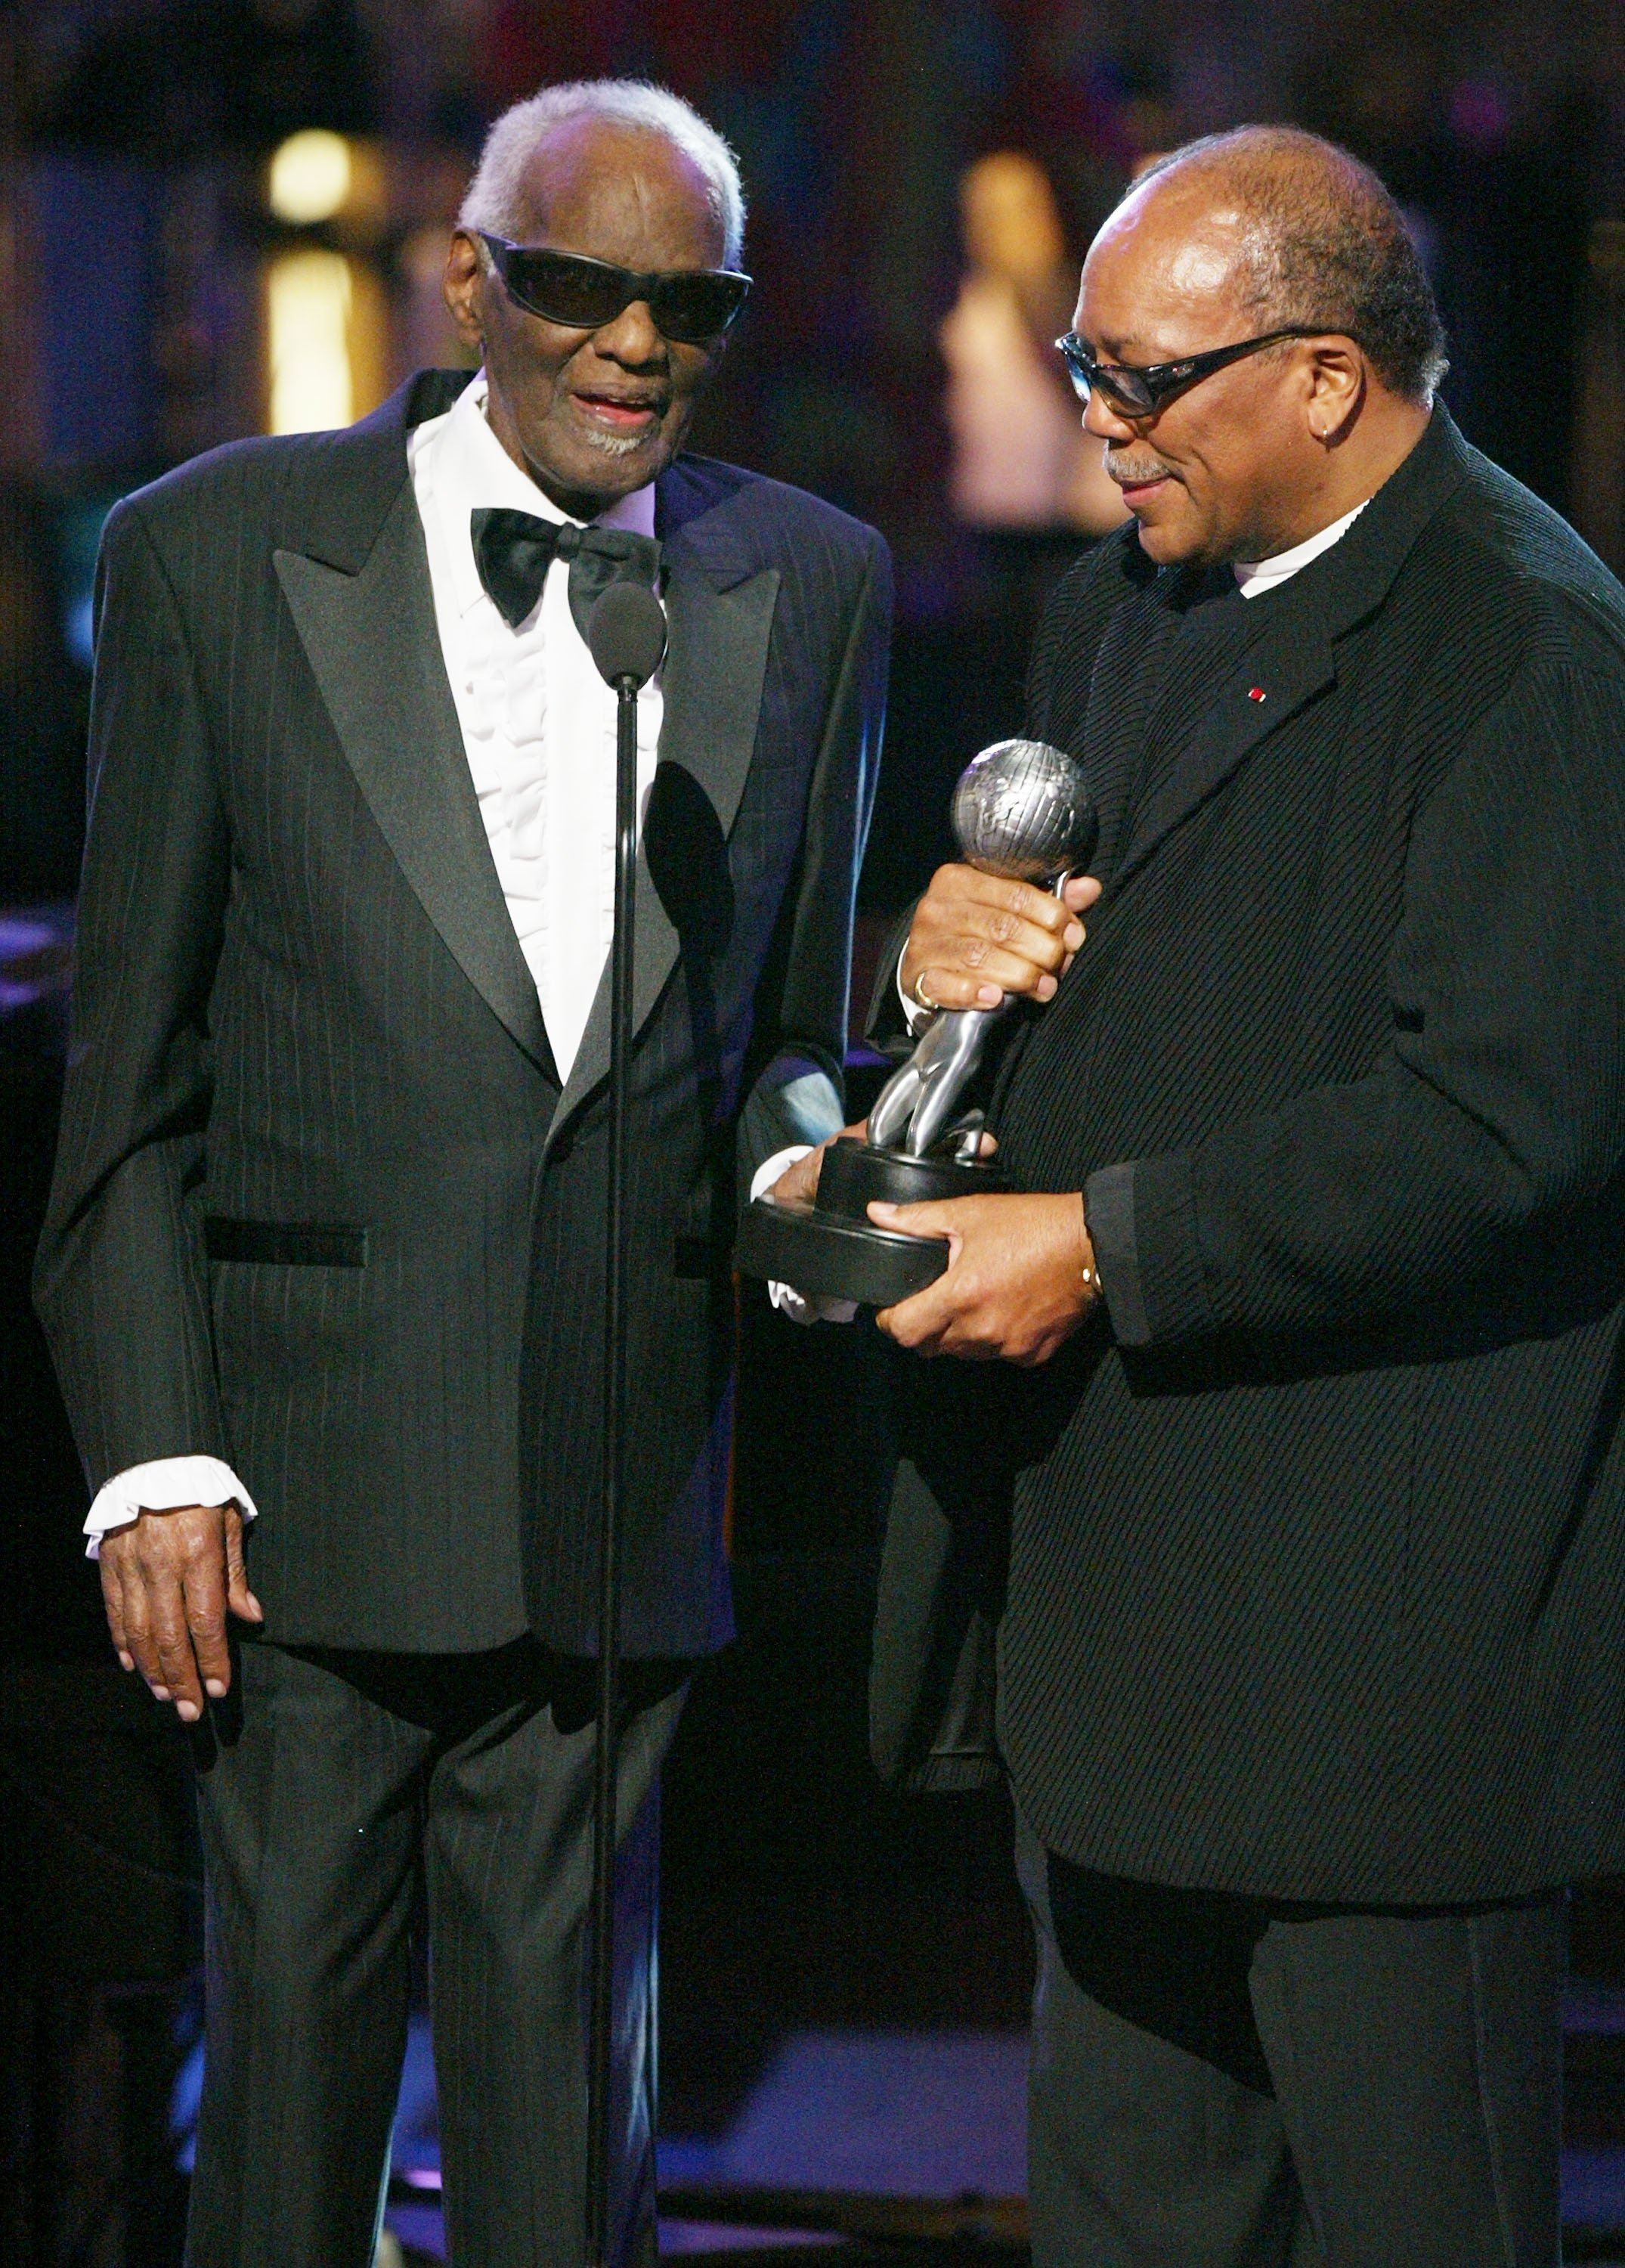 Ray Charles and Producer Quincy Jones on stage at the 35th Annual NAACP Image Awards at the Universal Amphitheatre, March 6, 2004 | Photo: GettyImages